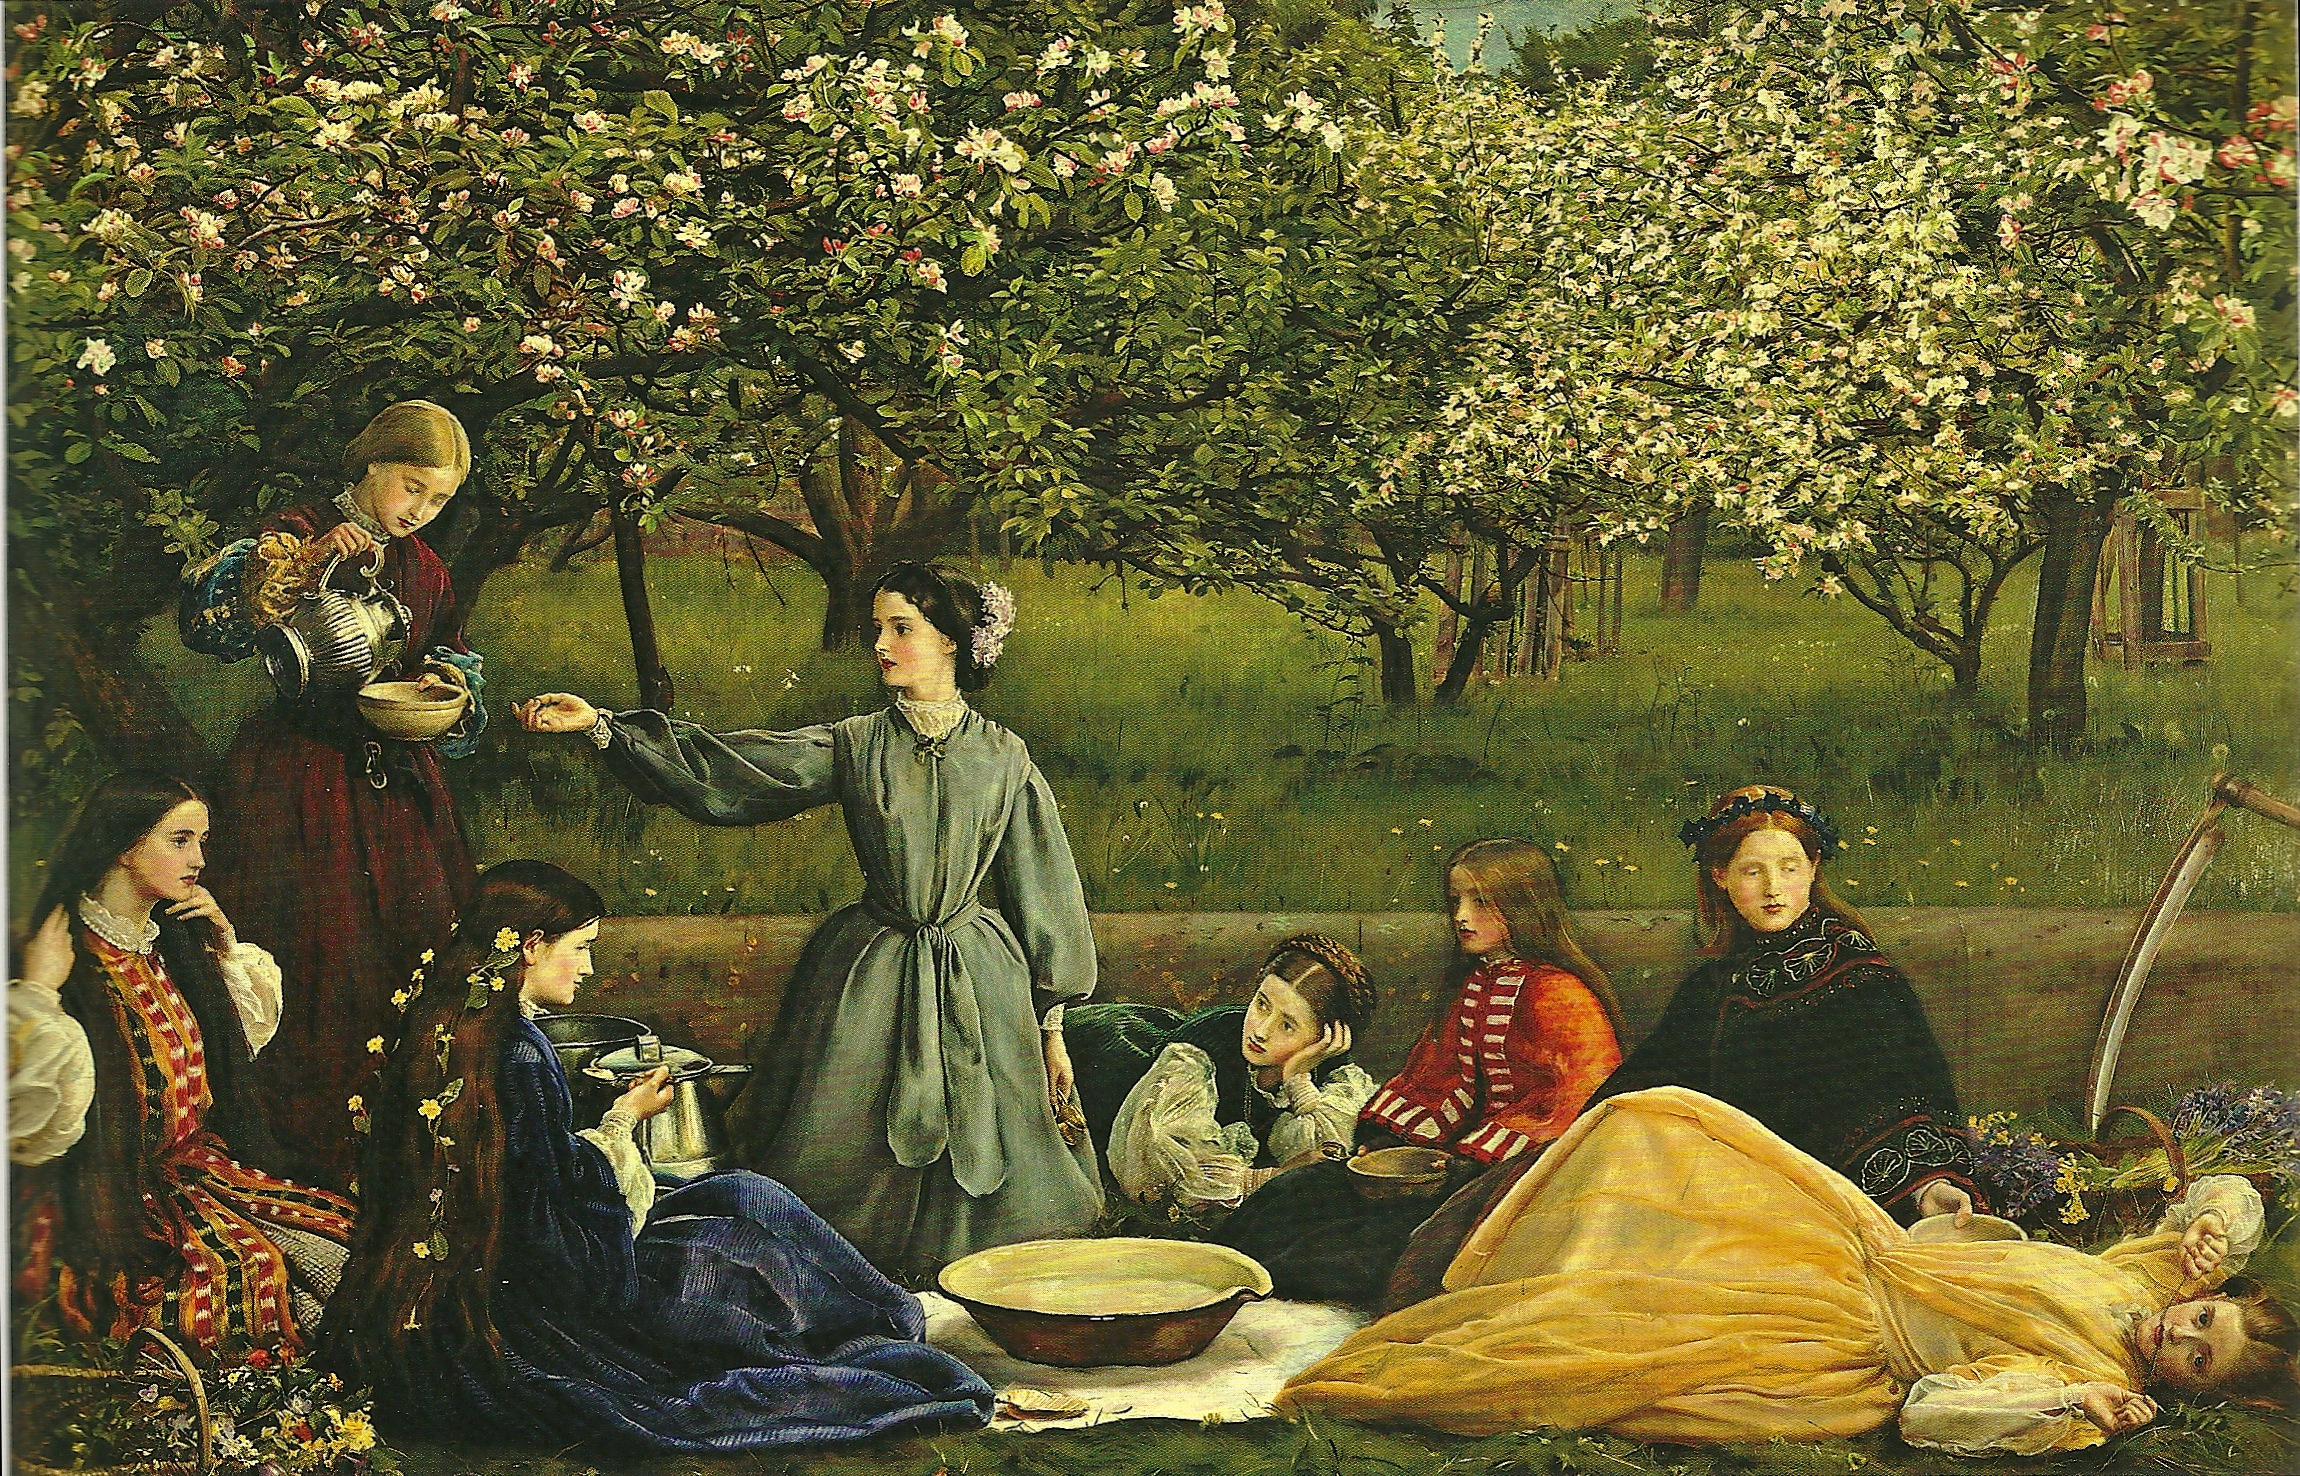 SpringAppleBlossoms.jpg